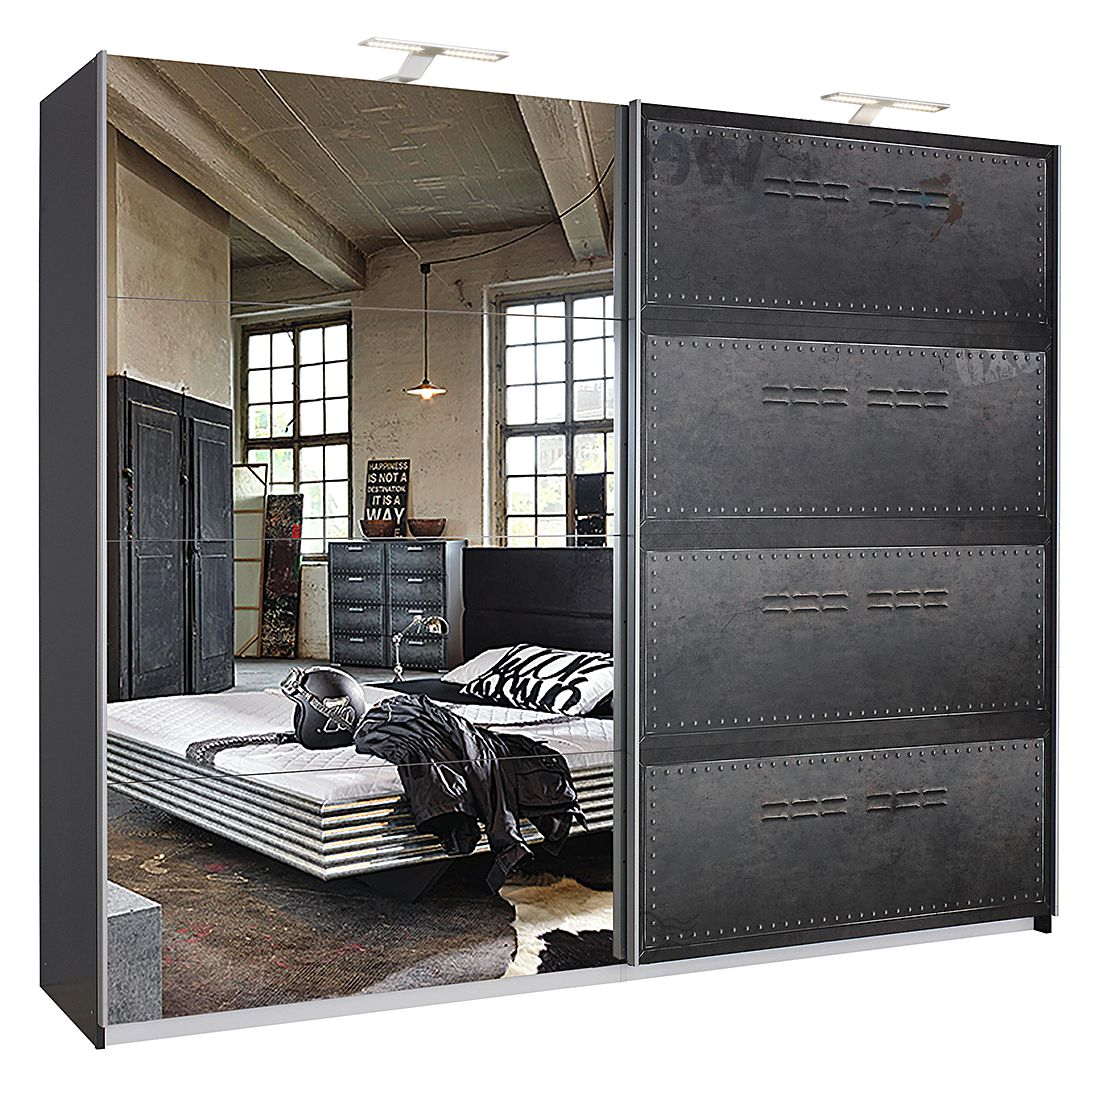 schwebet renschrank workbase industrial print optik graphit mit beleuchtung 181 cm 2. Black Bedroom Furniture Sets. Home Design Ideas